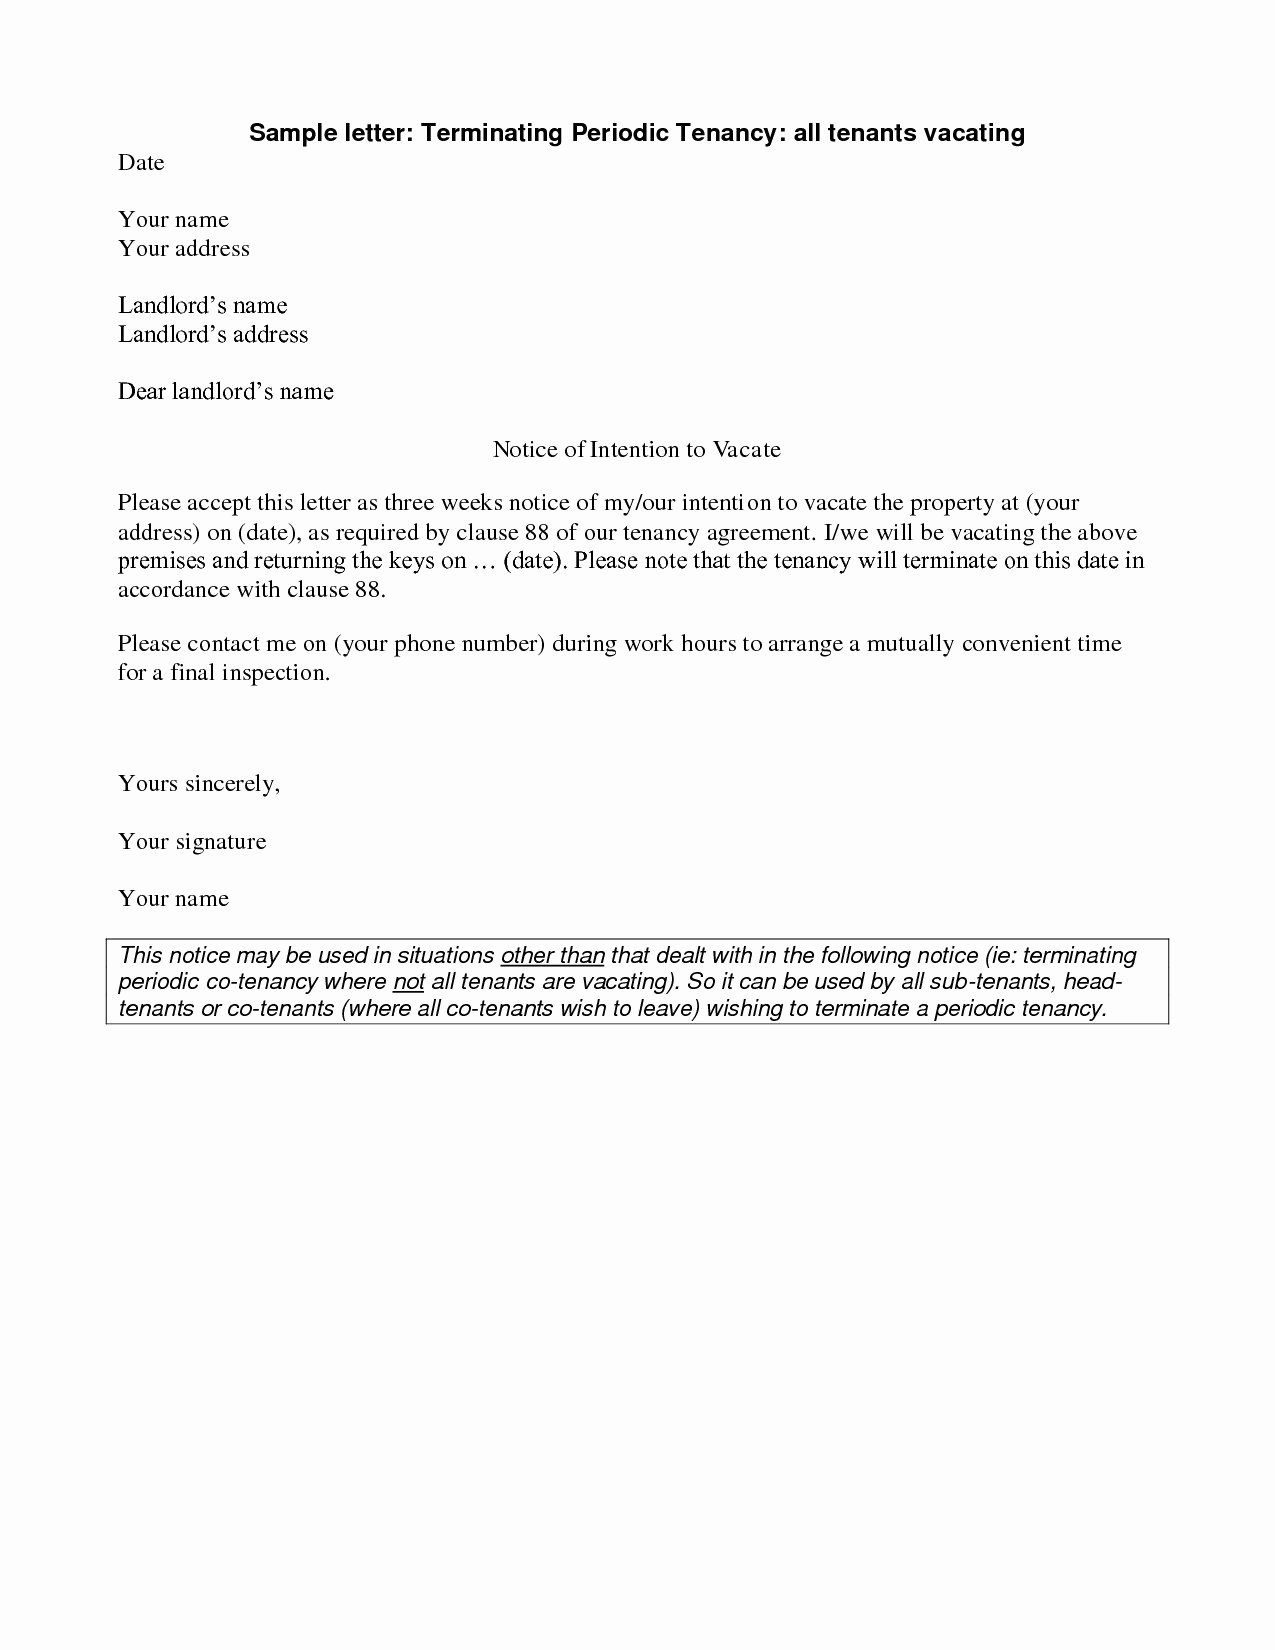 Unauthorized Tenant Letter Template Awesome Unauthorized Tenant Letter Template Examples